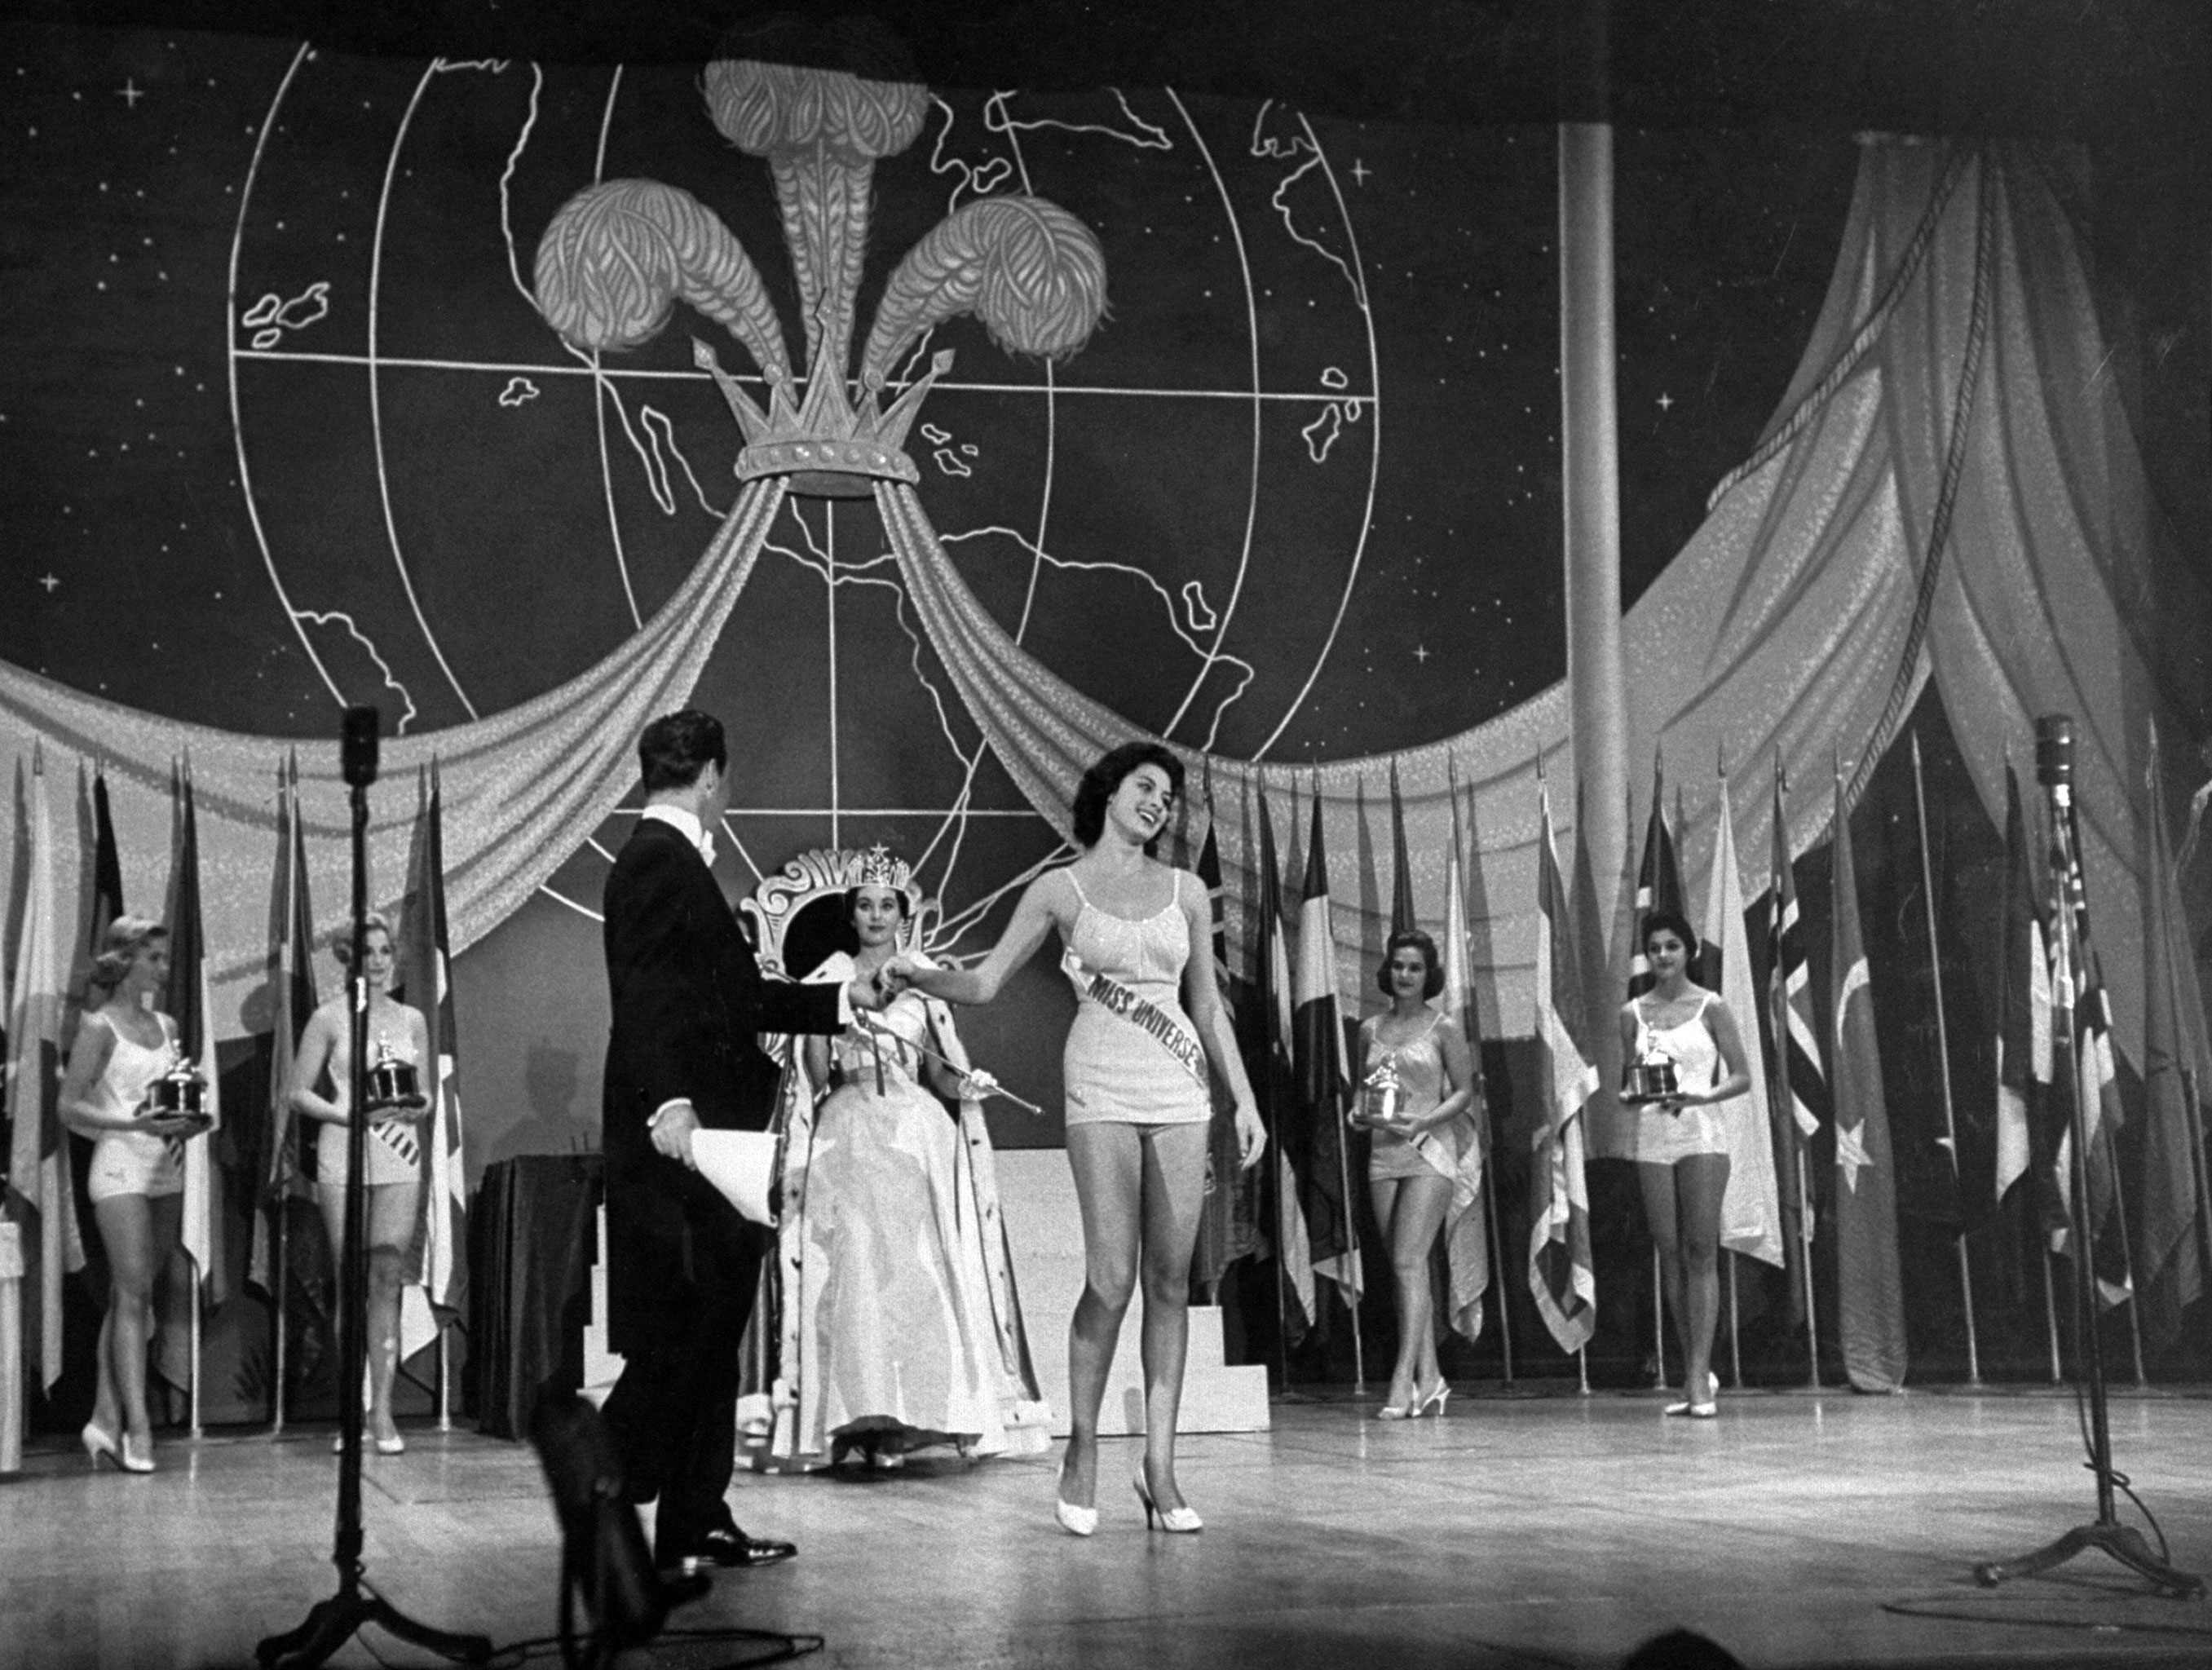 Winner Gladys Zender being crowned by former Miss Universe Carol Morris, 1957.